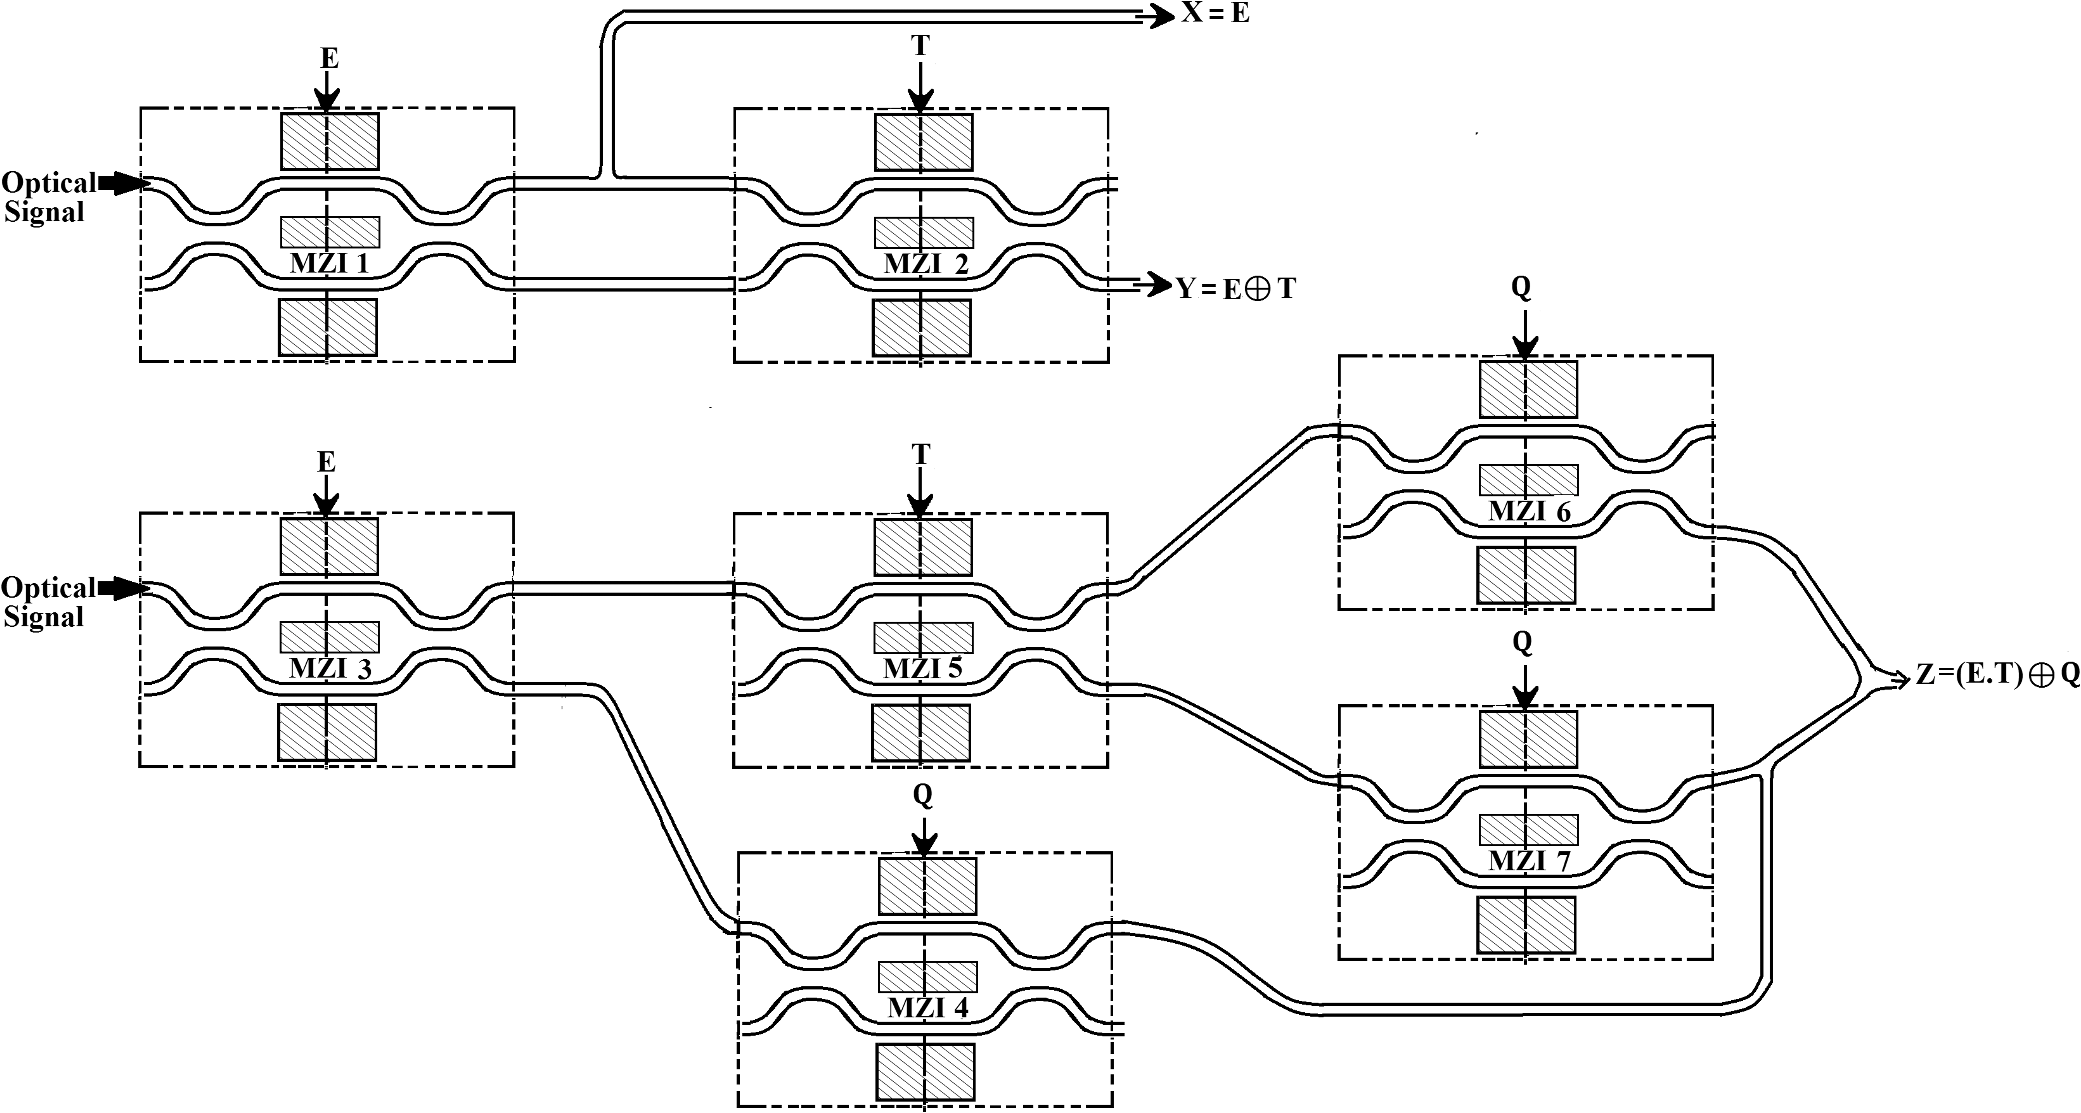 Design of reversible sequential circuits using electro optic oe5512125105f004g pooptronica